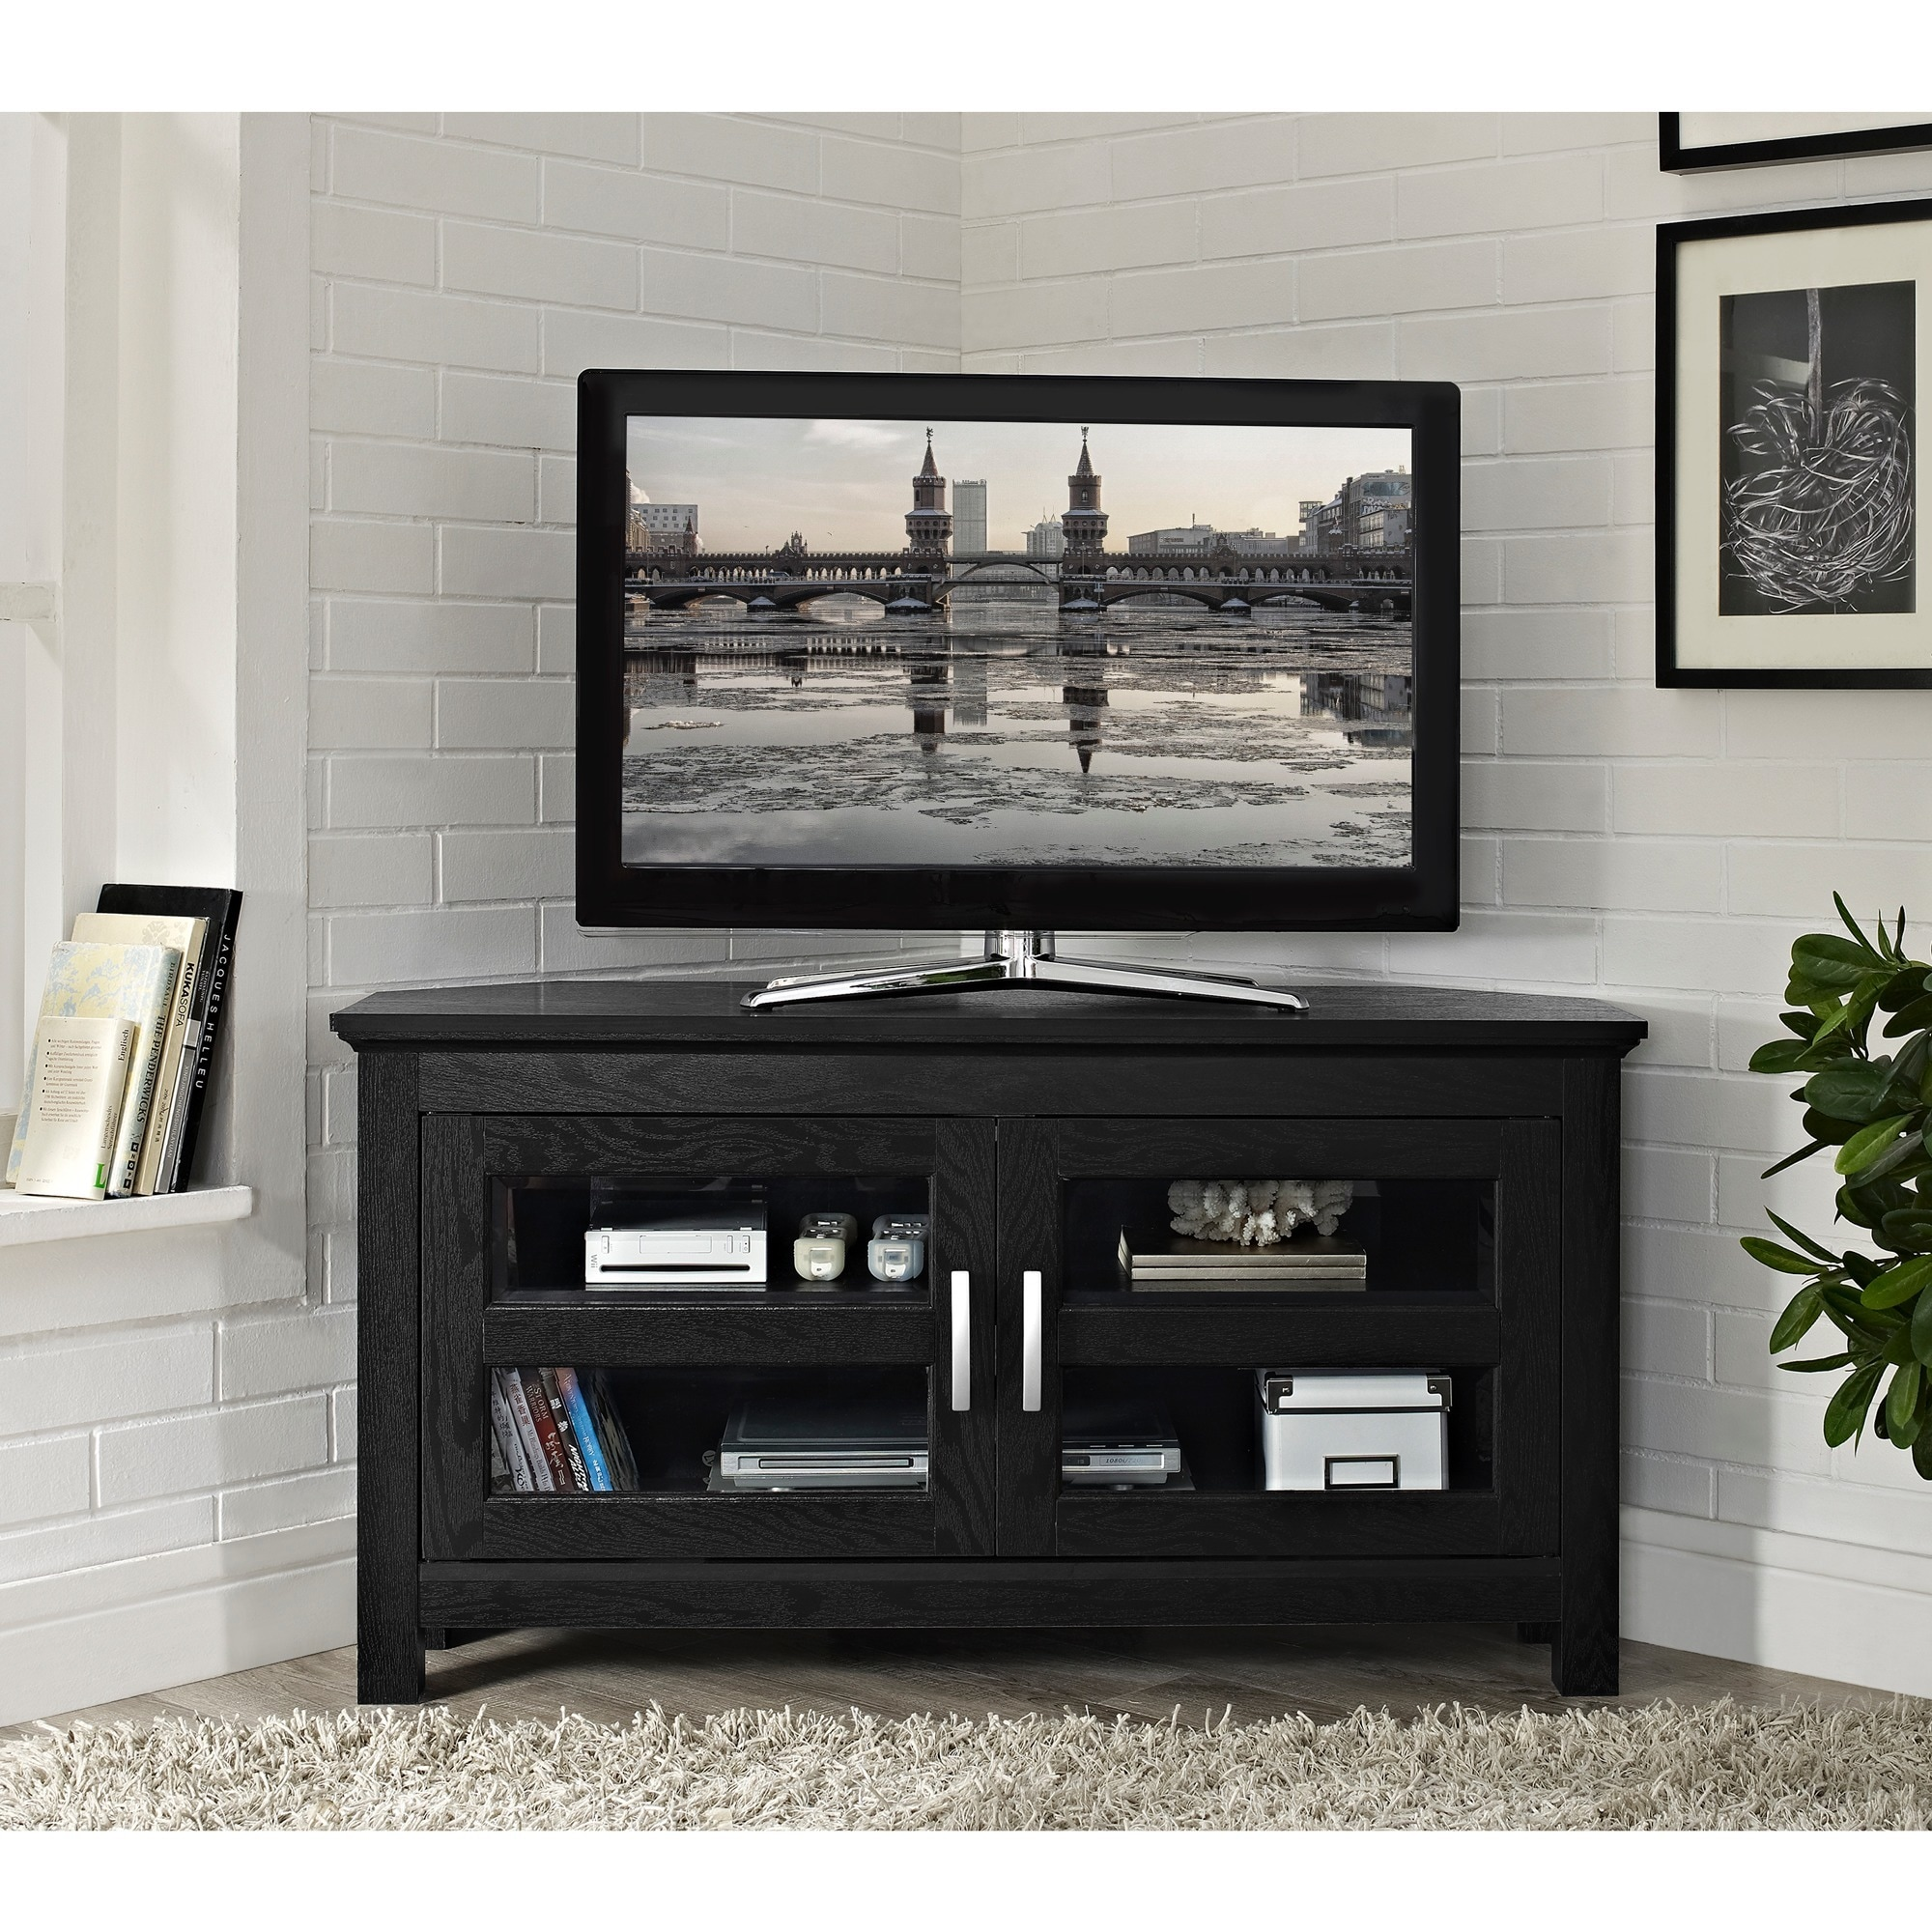 Walker Edison Black Wood 44-inch Corner TV Stand at Sears.com